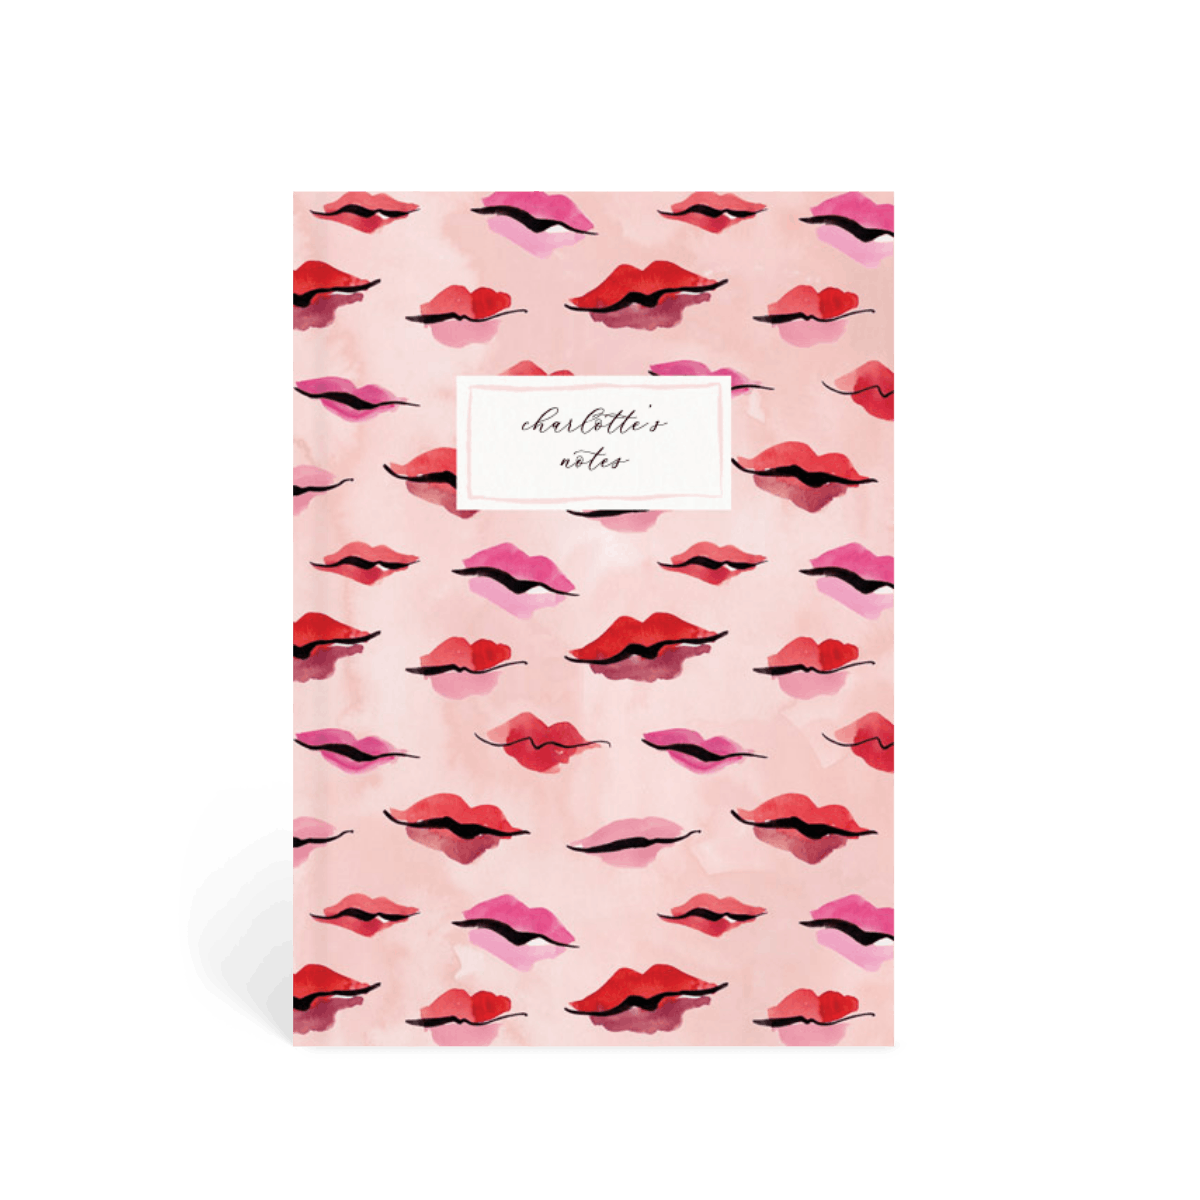 Https%3a%2f%2fwww.papier.com%2fproduct image%2f99450%2f25%2flips lips lips 25366 front 1577112621.png?ixlib=rb 1.1